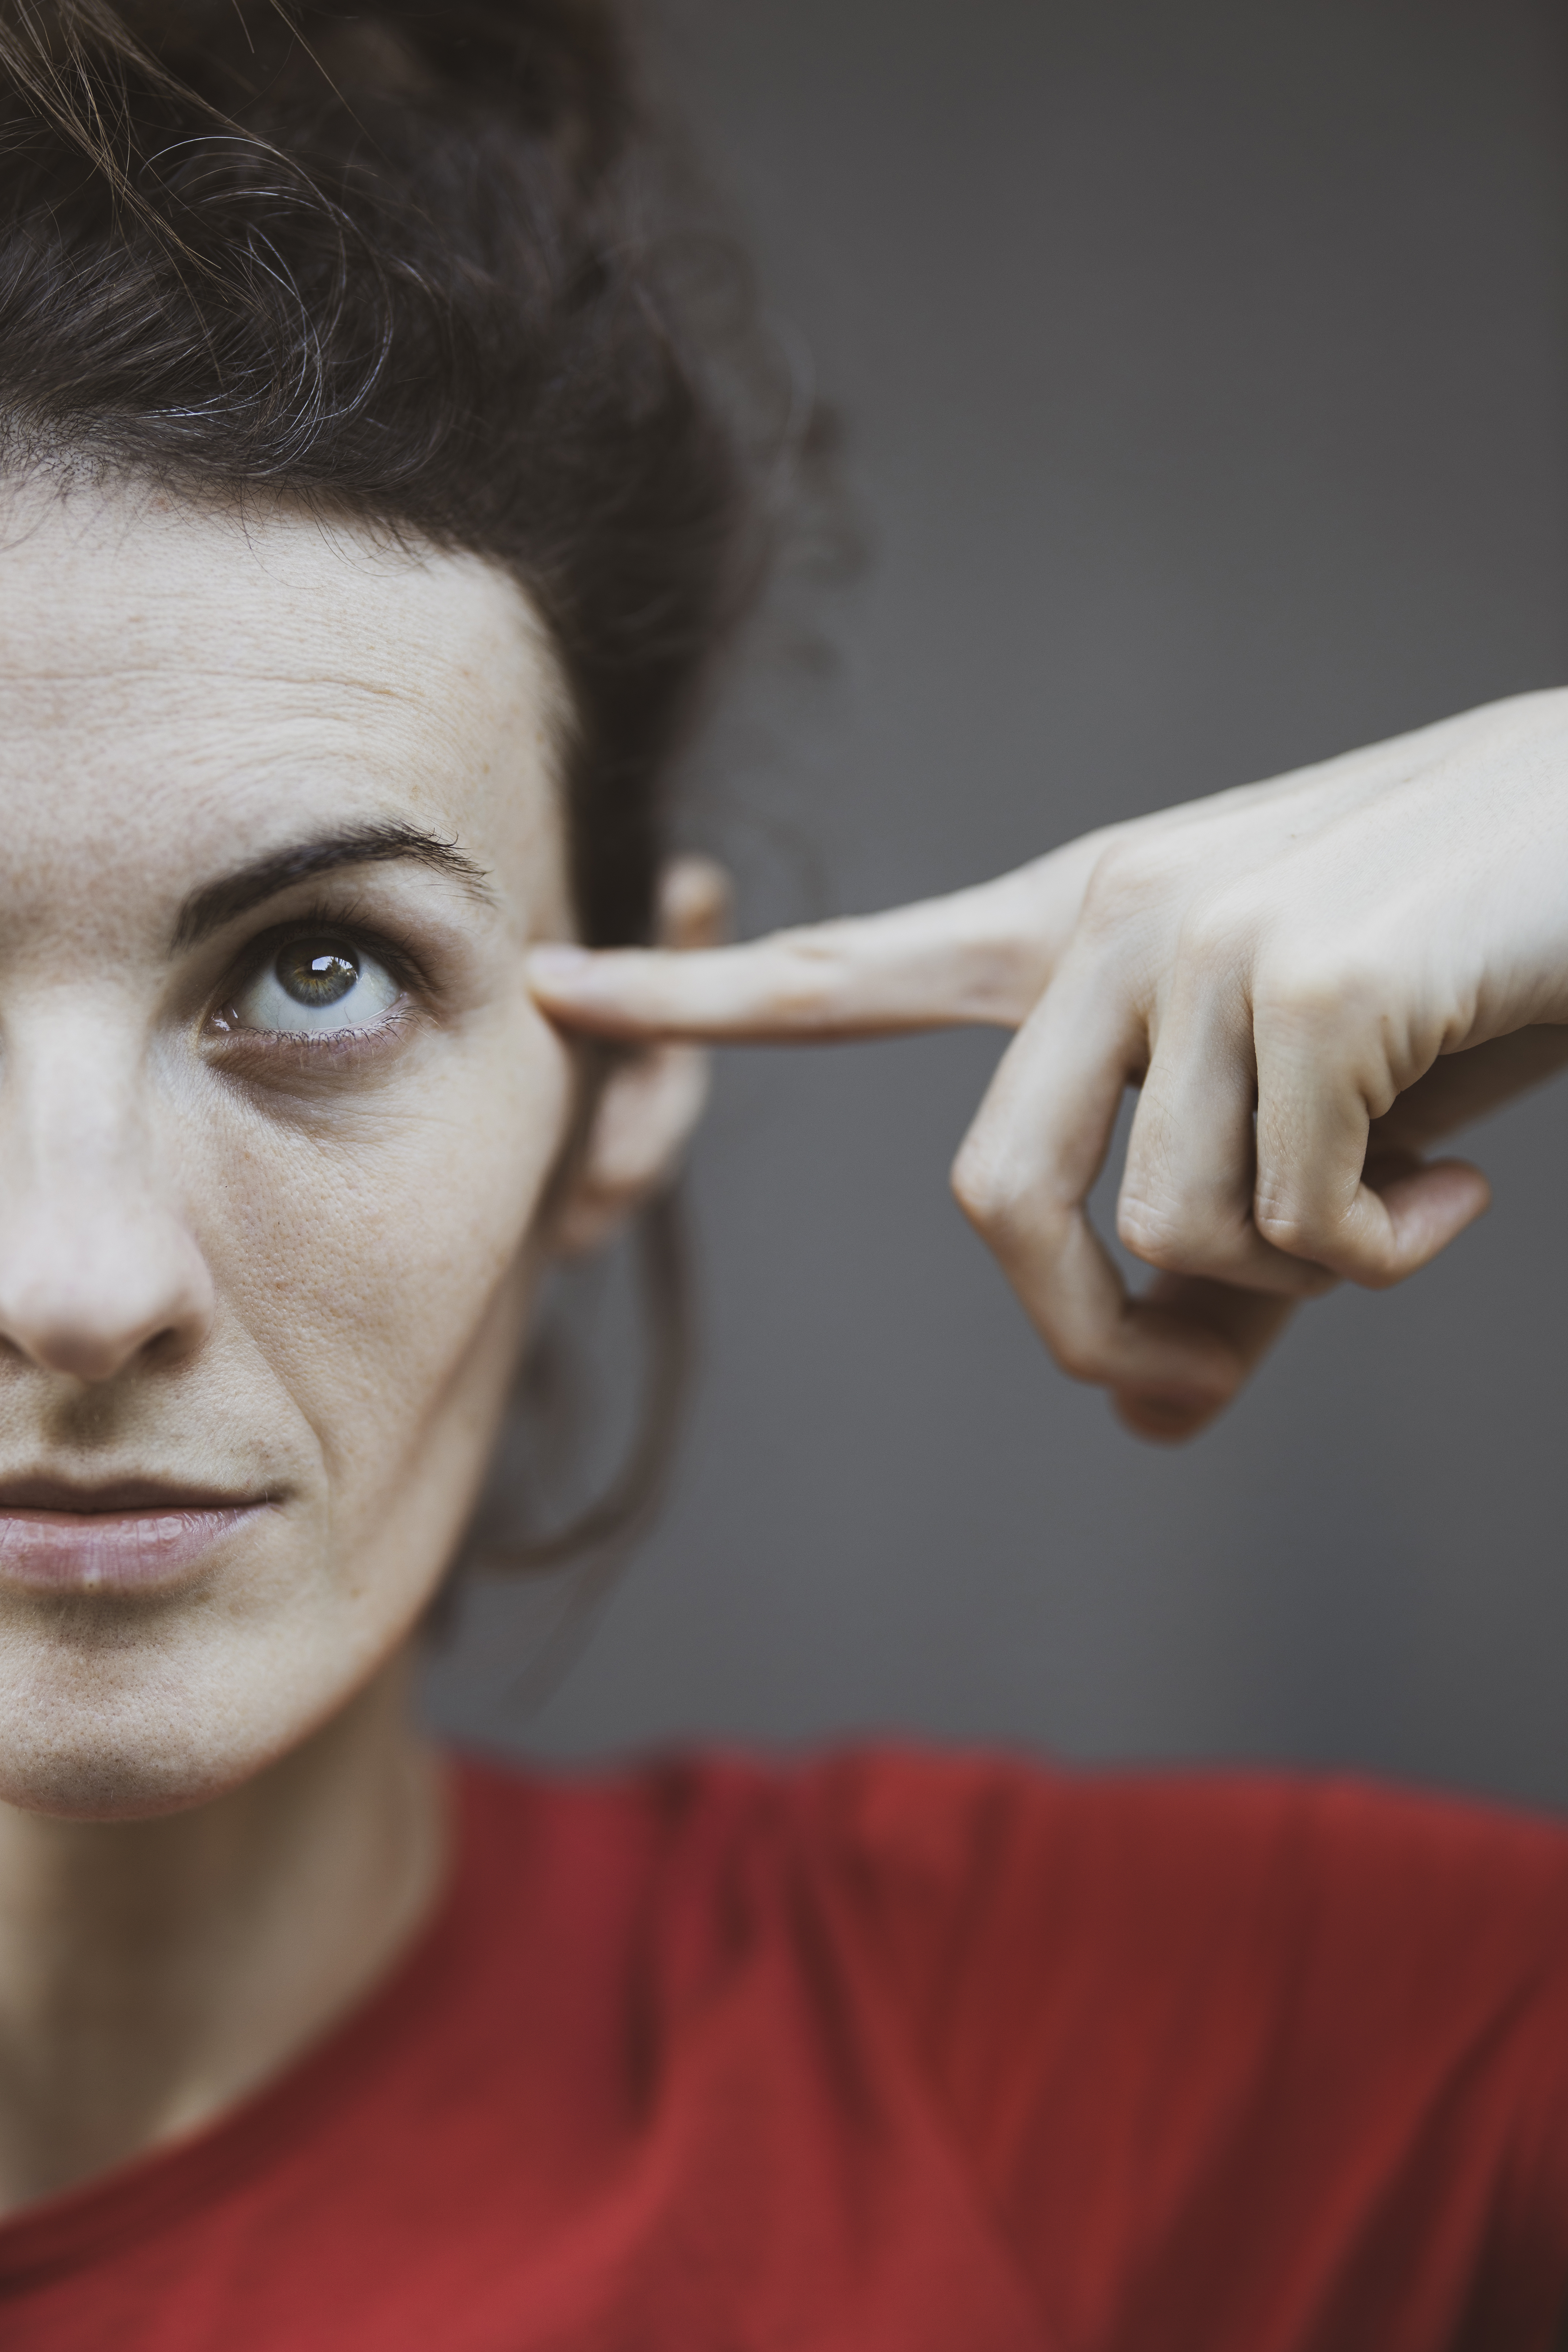 Selective Focus Portrait Photo of Woman in Red T-shirt Pointing to Her Head